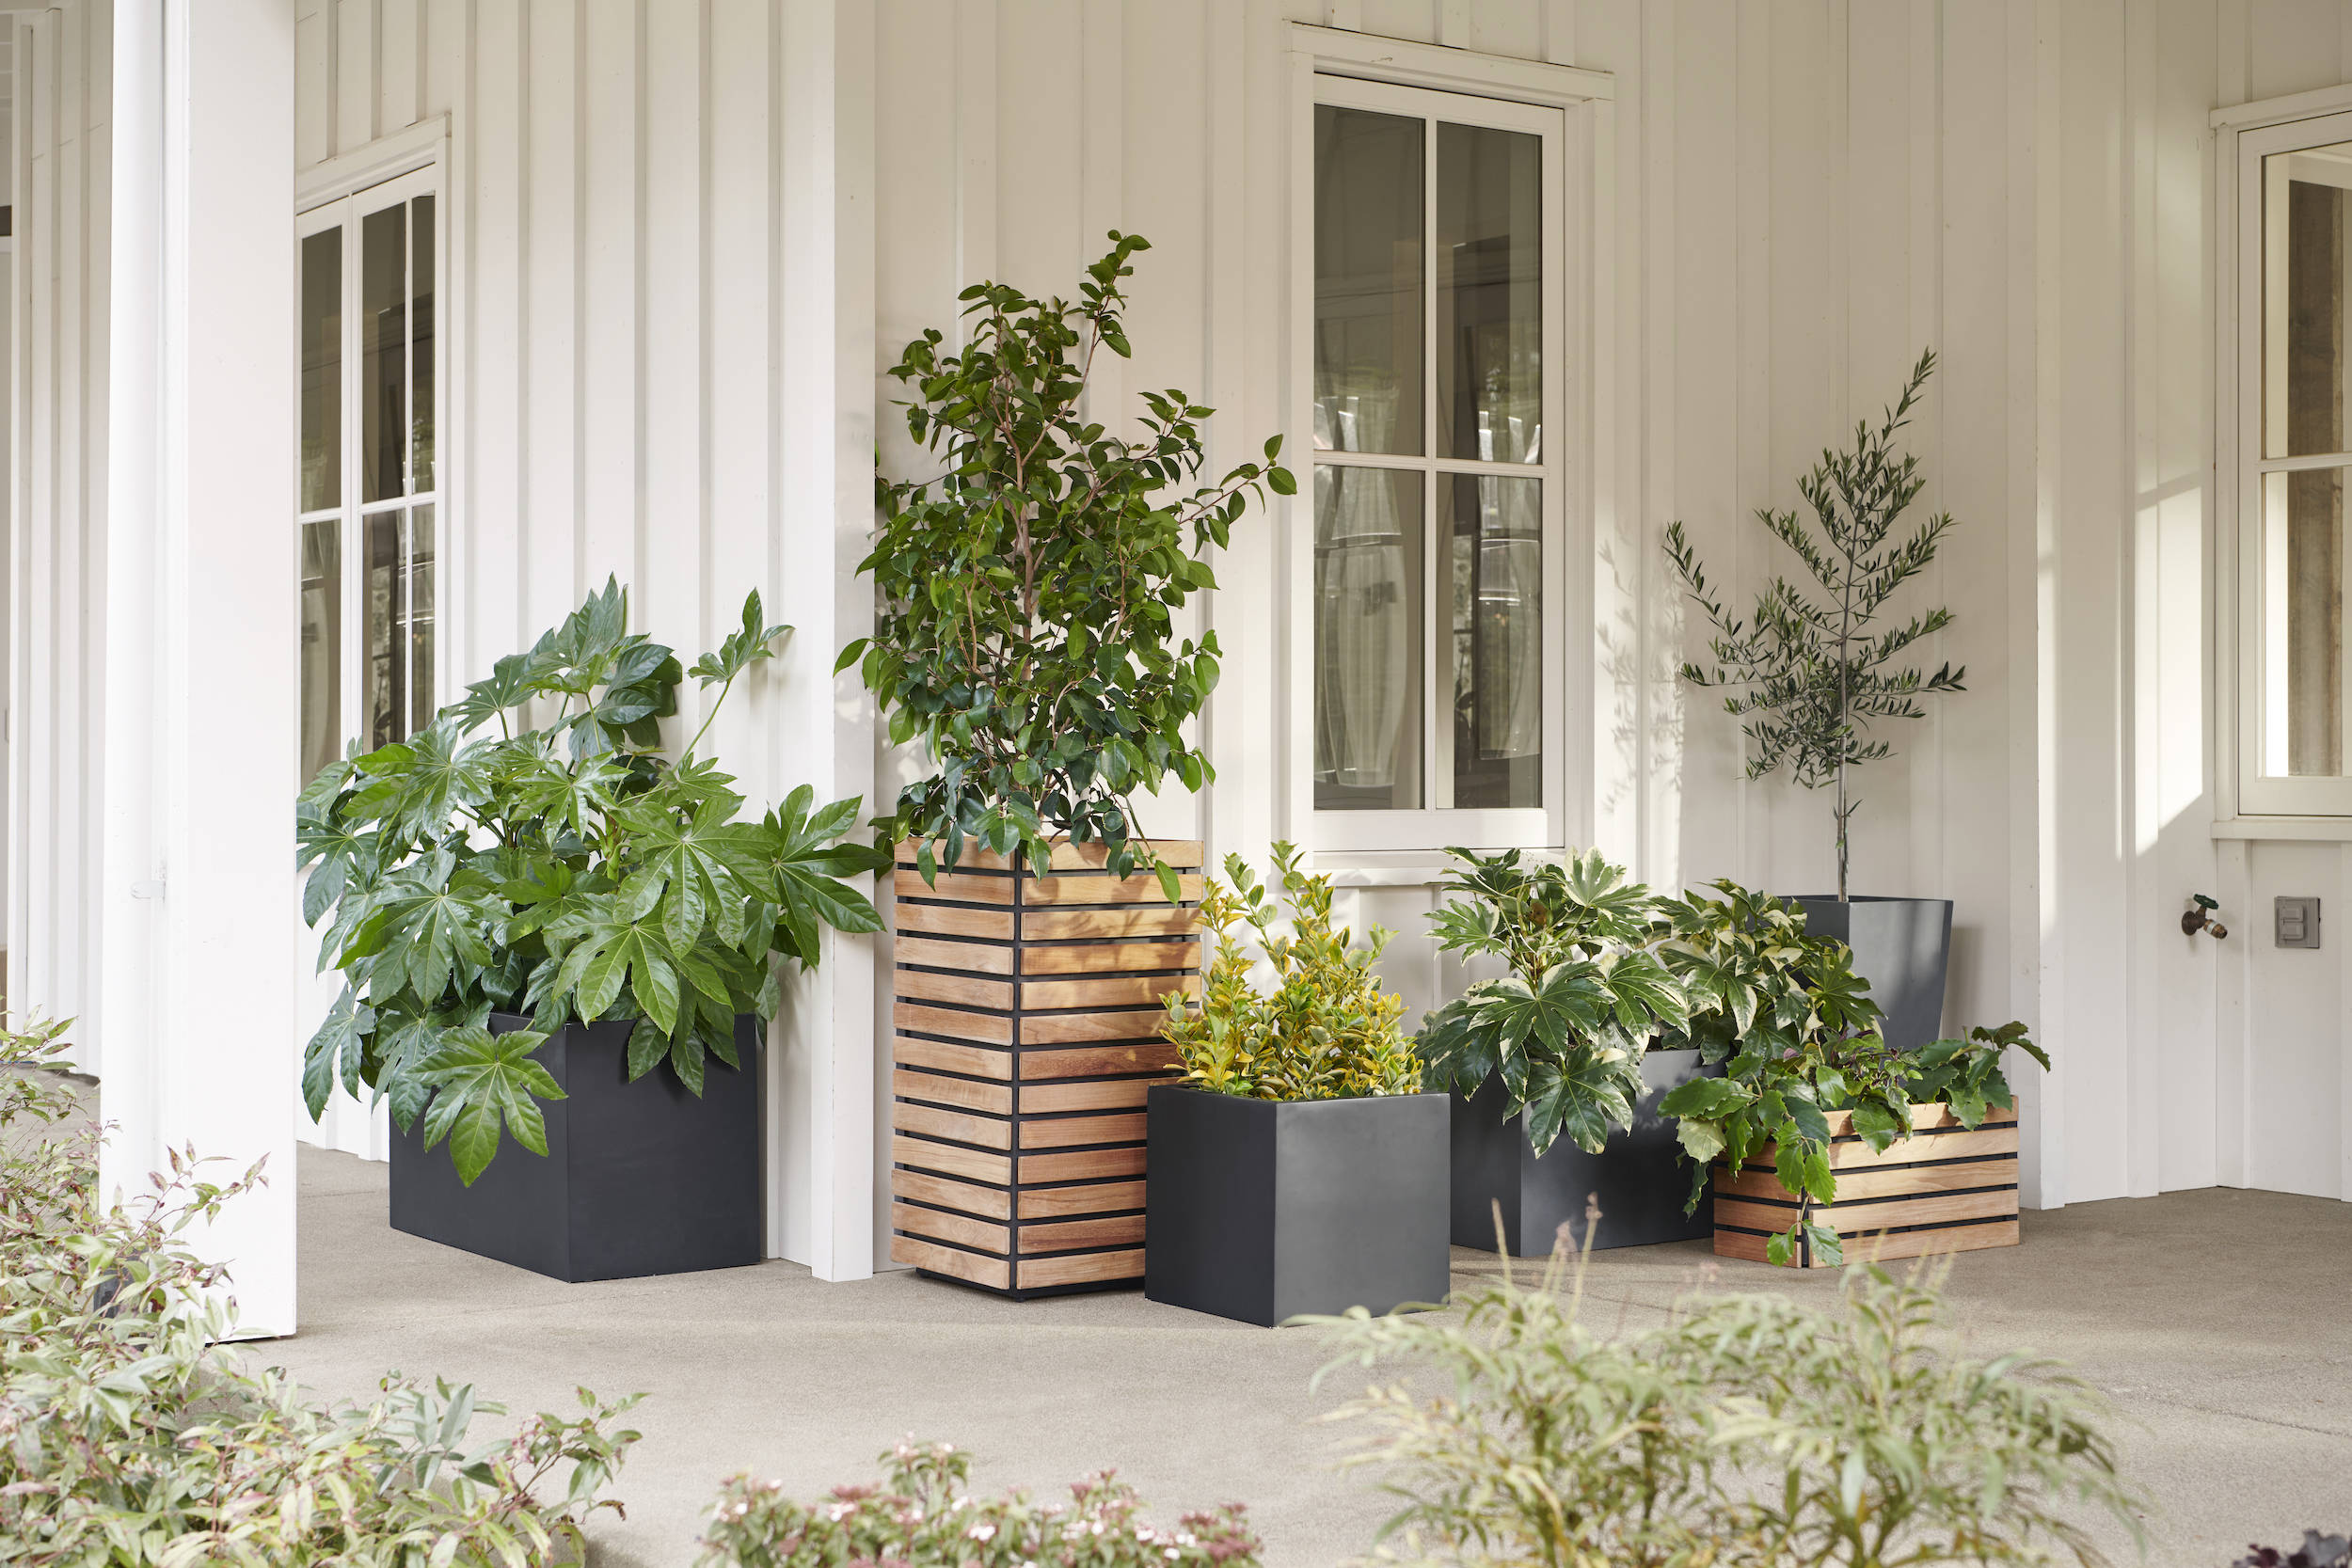 Pots and planters create the ideal garden: They can be moved according to sun and temperature conditions; you can control the soil and nutrients within them; and they're gentler on the gardener's back. Plus, you can use them to soften the edges of a patio or terrace, add privacy, and create the feeling of verdant rooms.